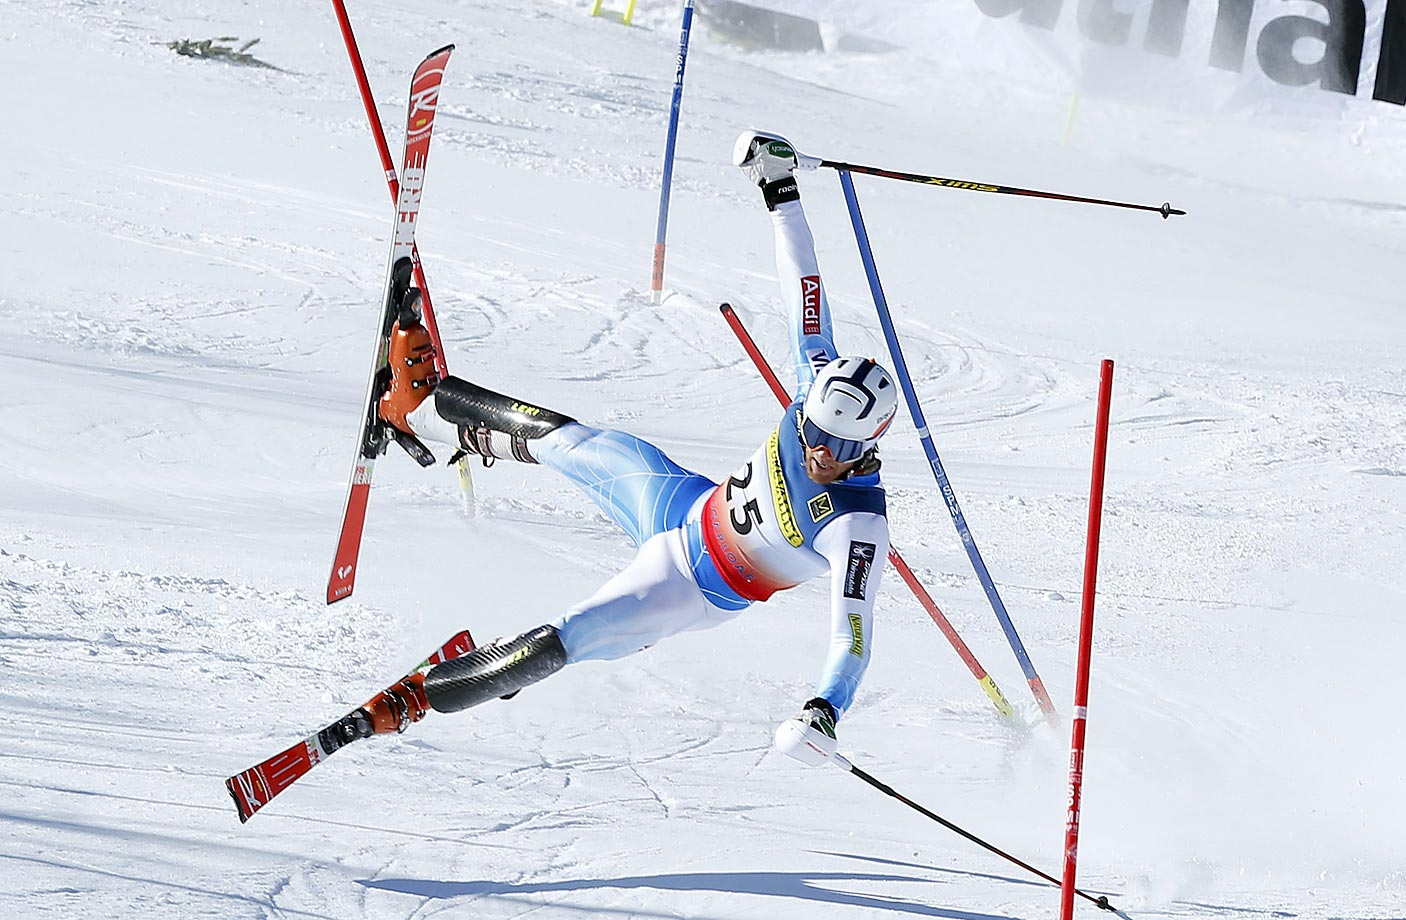 Jack Auty goes airborne in the slalom at the U.S. Alpine Championships.